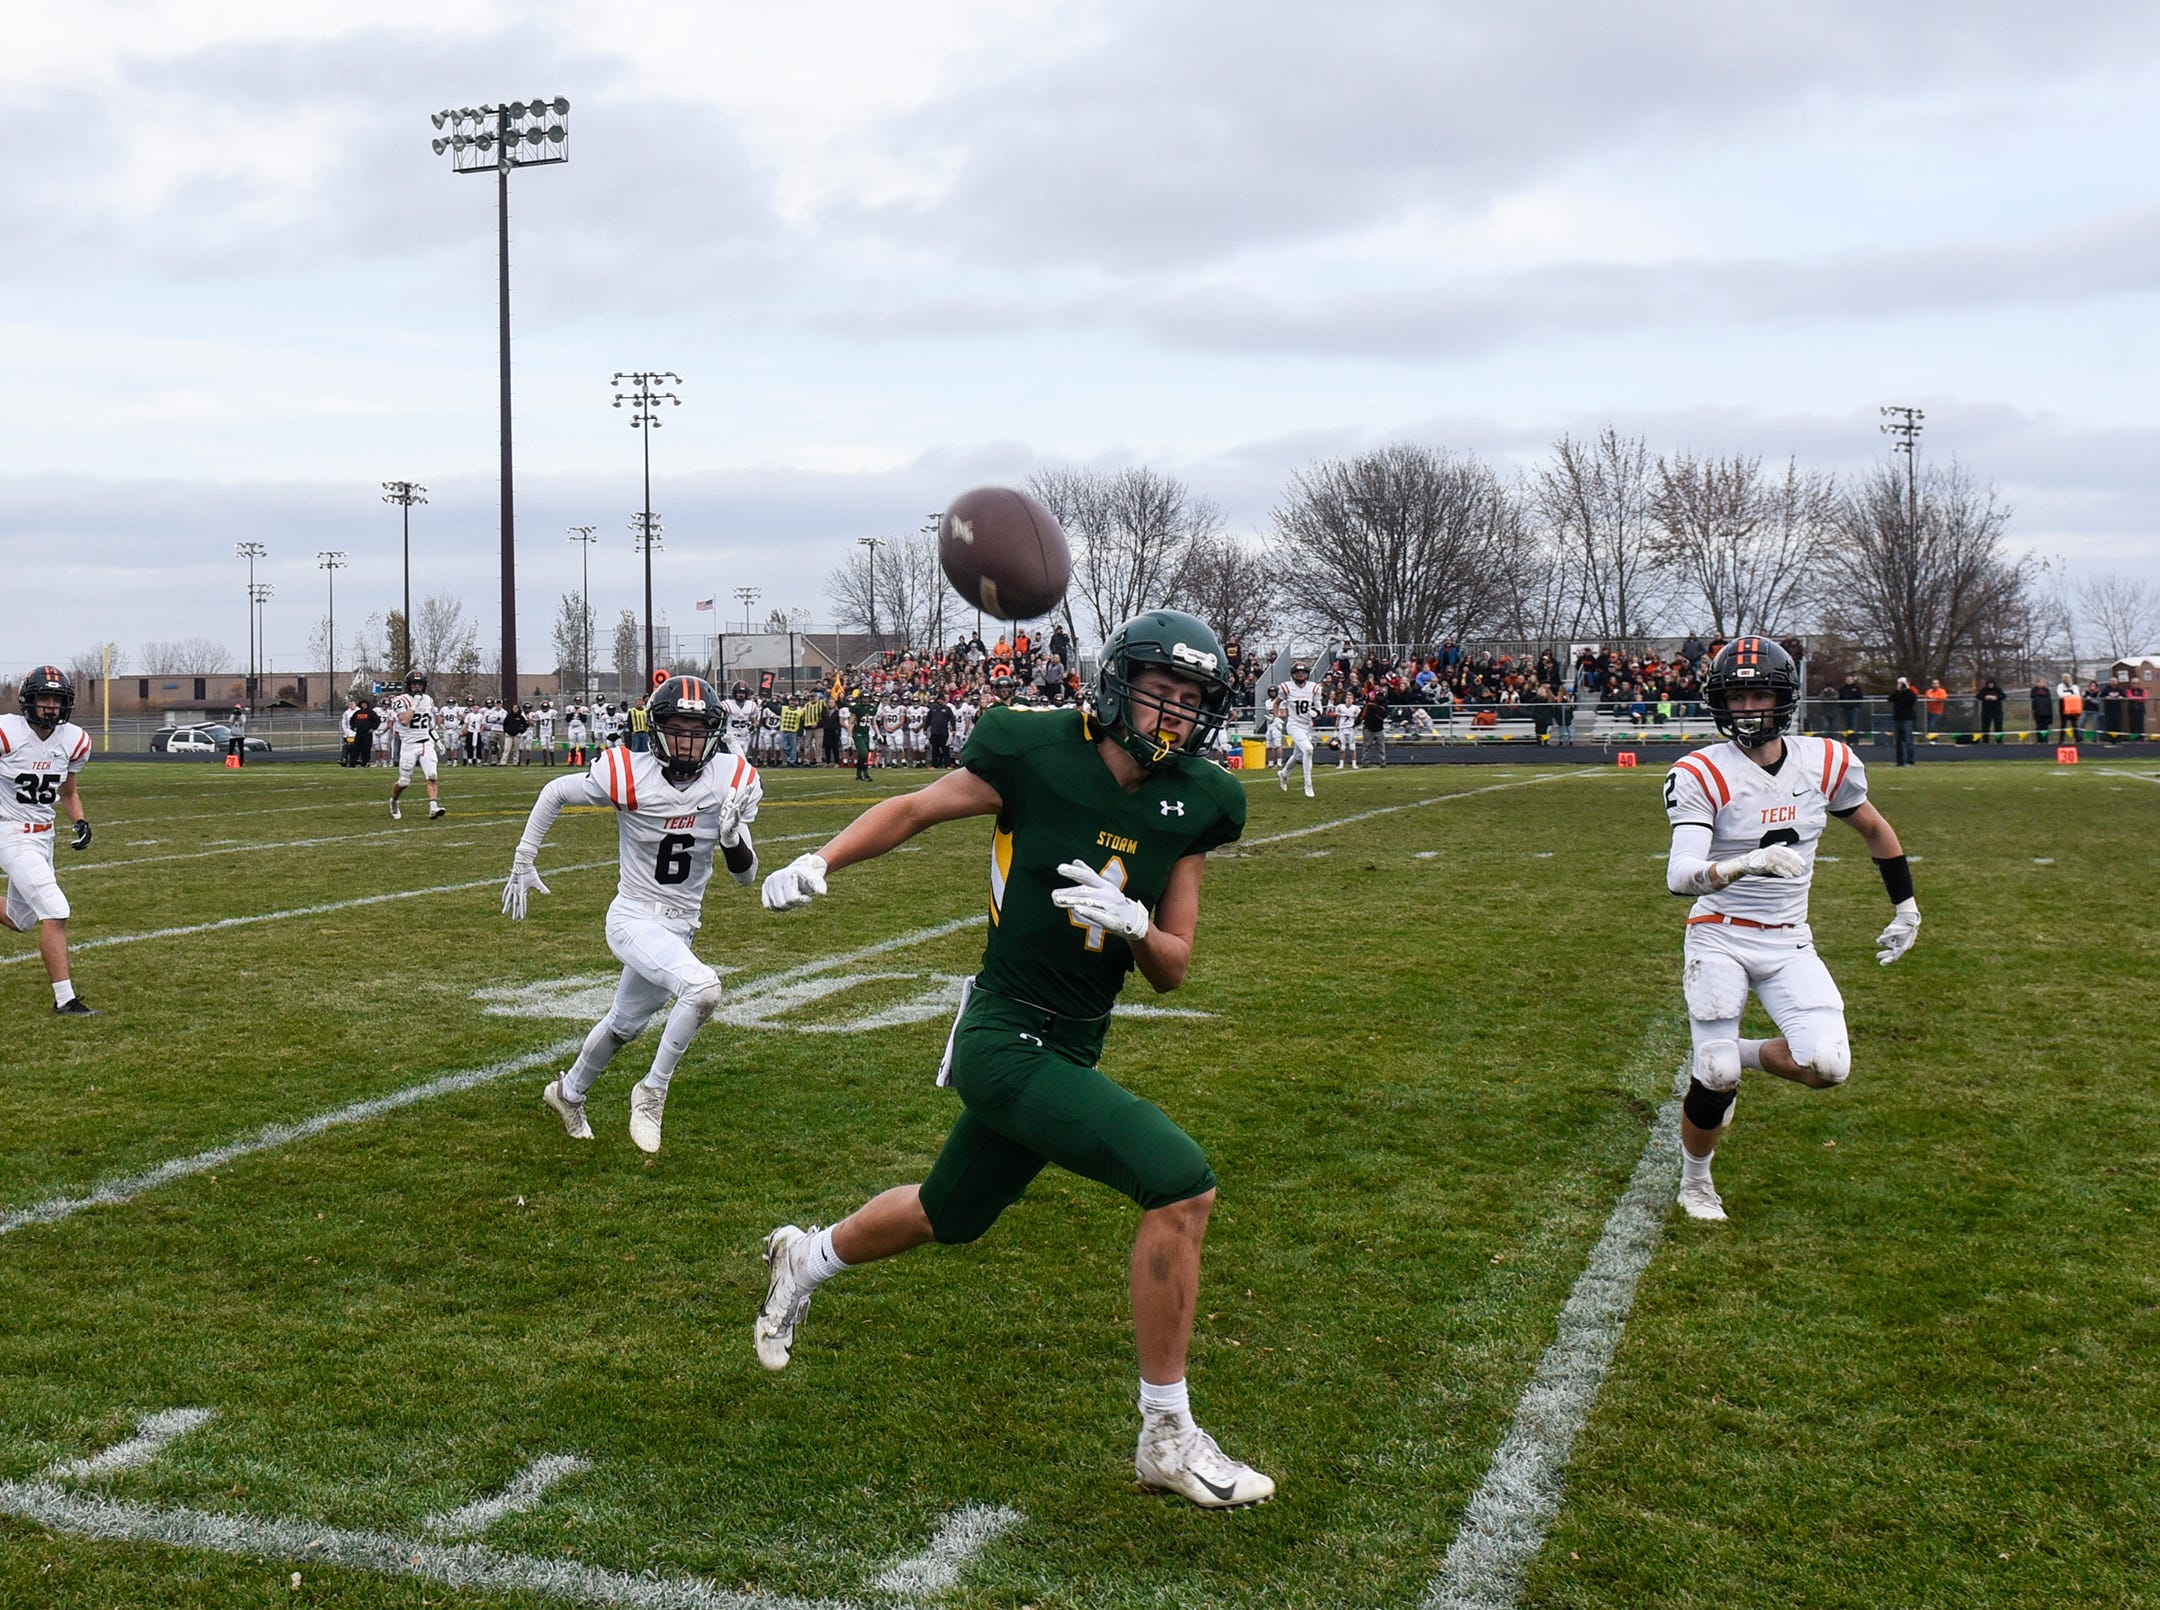 A pass bounces out of bounds in front of Kobe Lee of Sauk Rapids Saturday, Oct. 27, during the Section 6-5A semifinal game in Sauk Rapids.